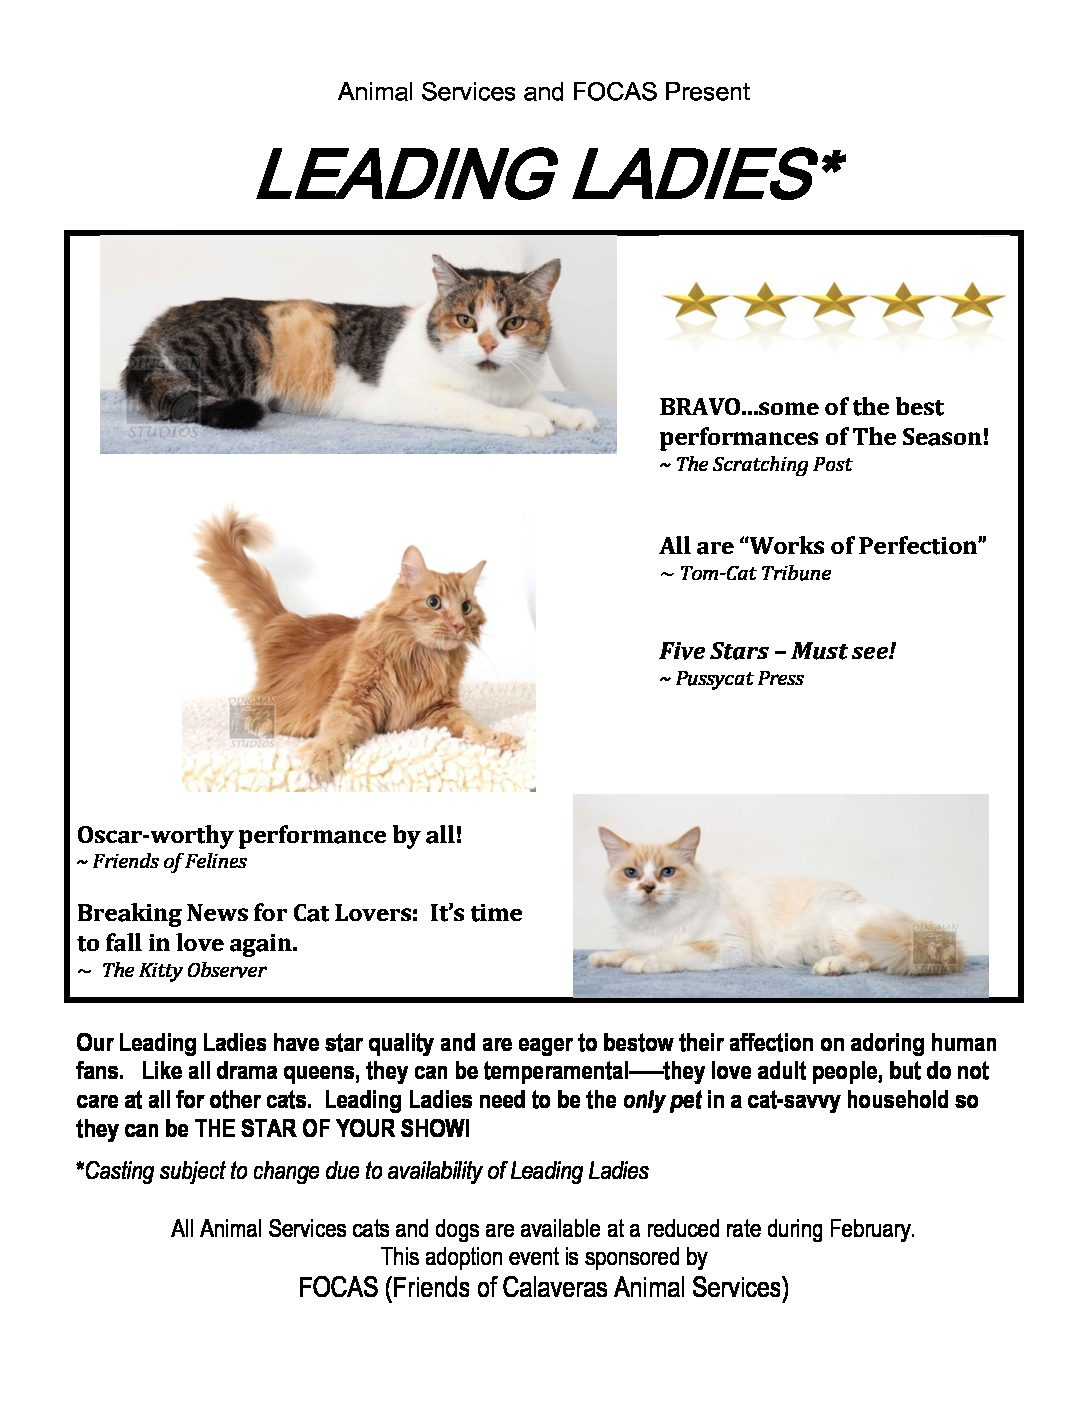 Introducing Our Leading Ladies….        Available for Adoption!